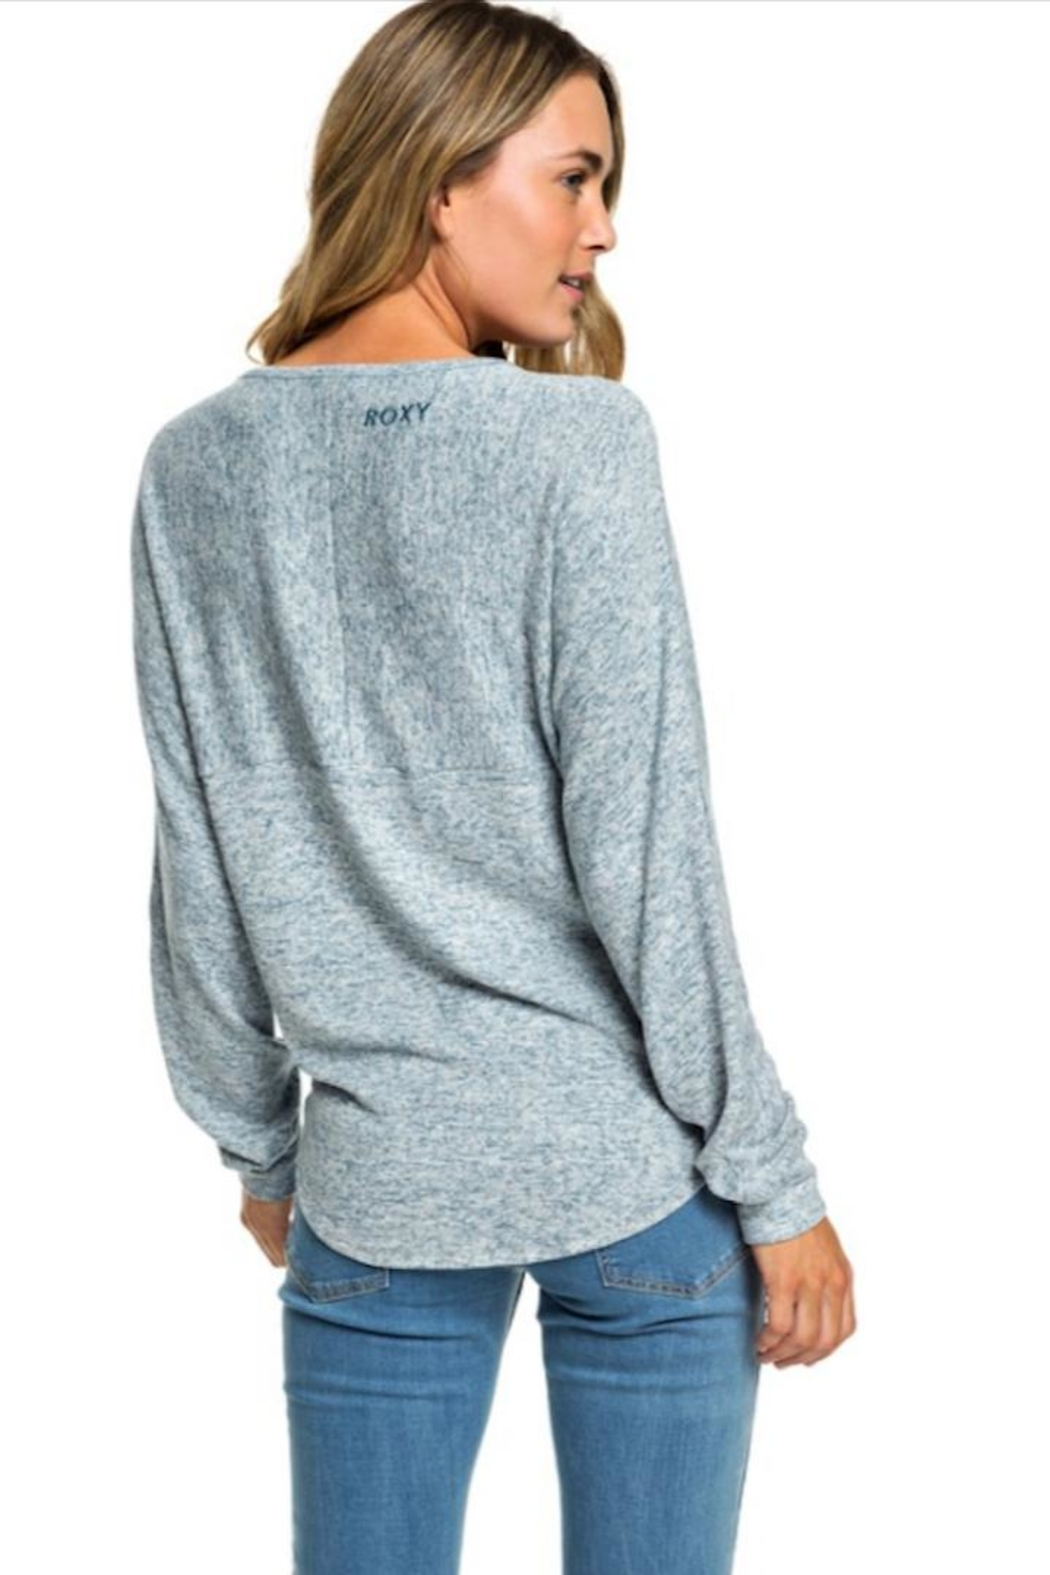 Roxy Heathered Tie-Front Pullover - Front Full Image